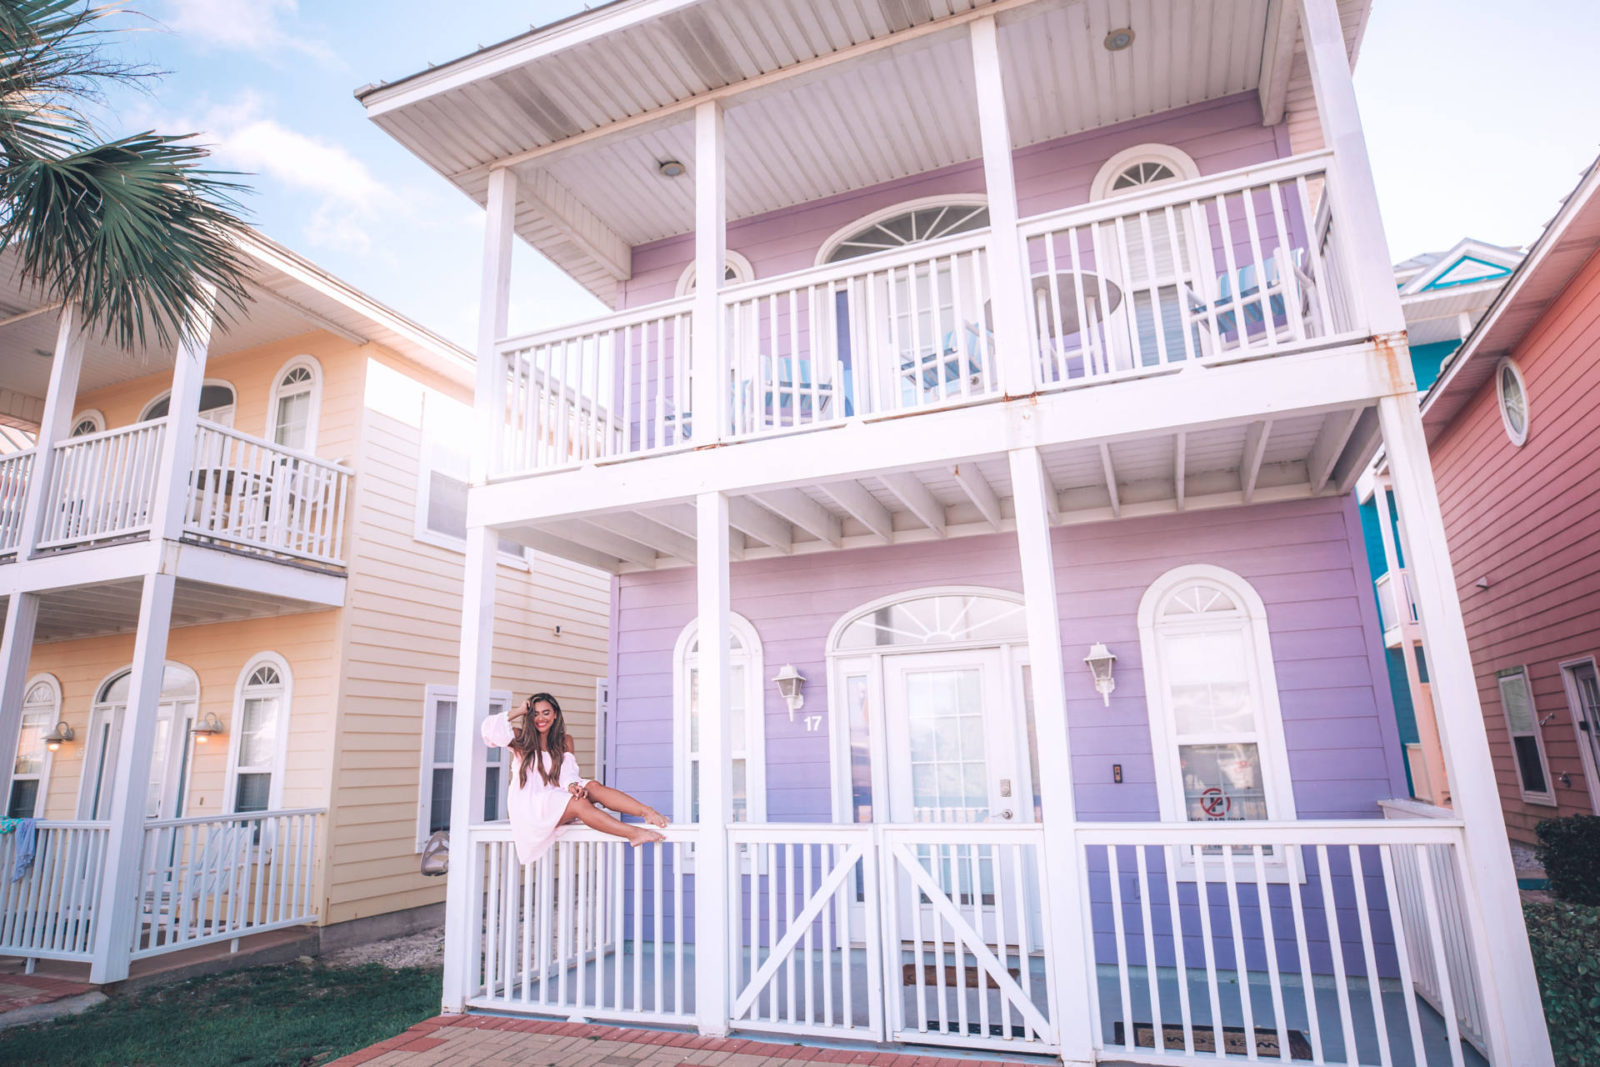 colorful home at panama city beach florida